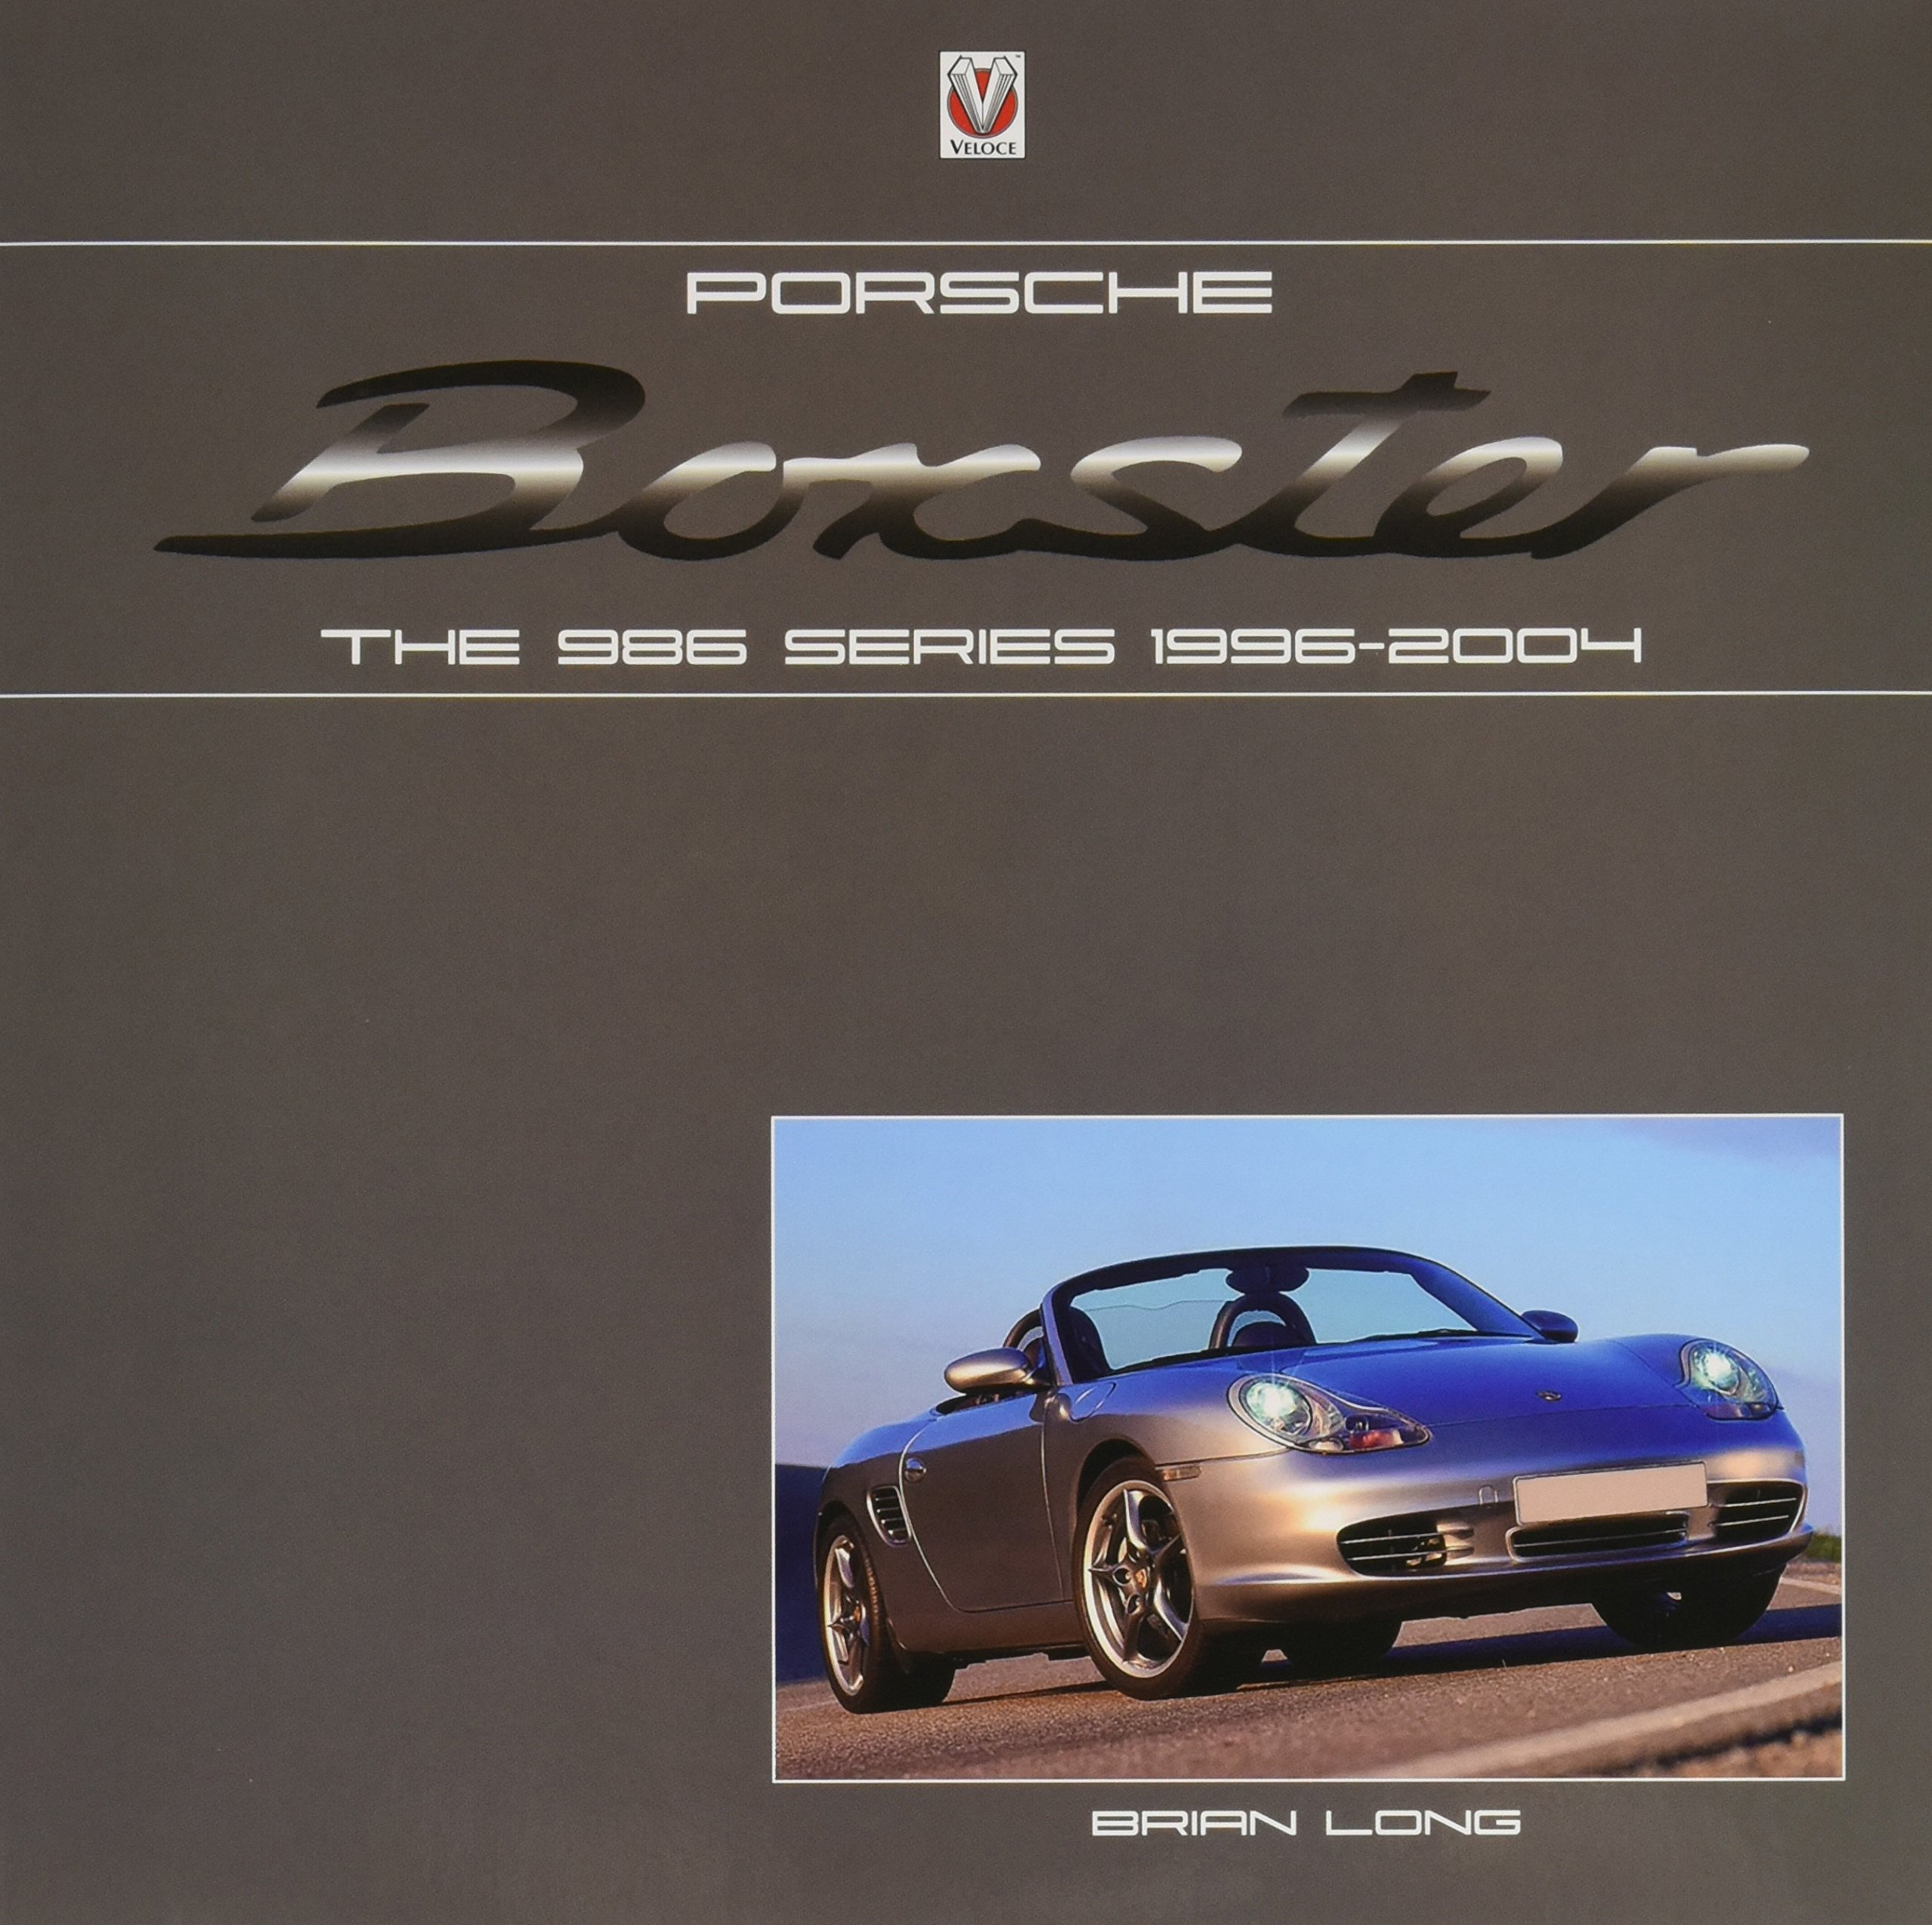 Porsche Boxster: The 986 Series 1996-2004: Brian Long: 9781845848040:  Amazon.com: Books